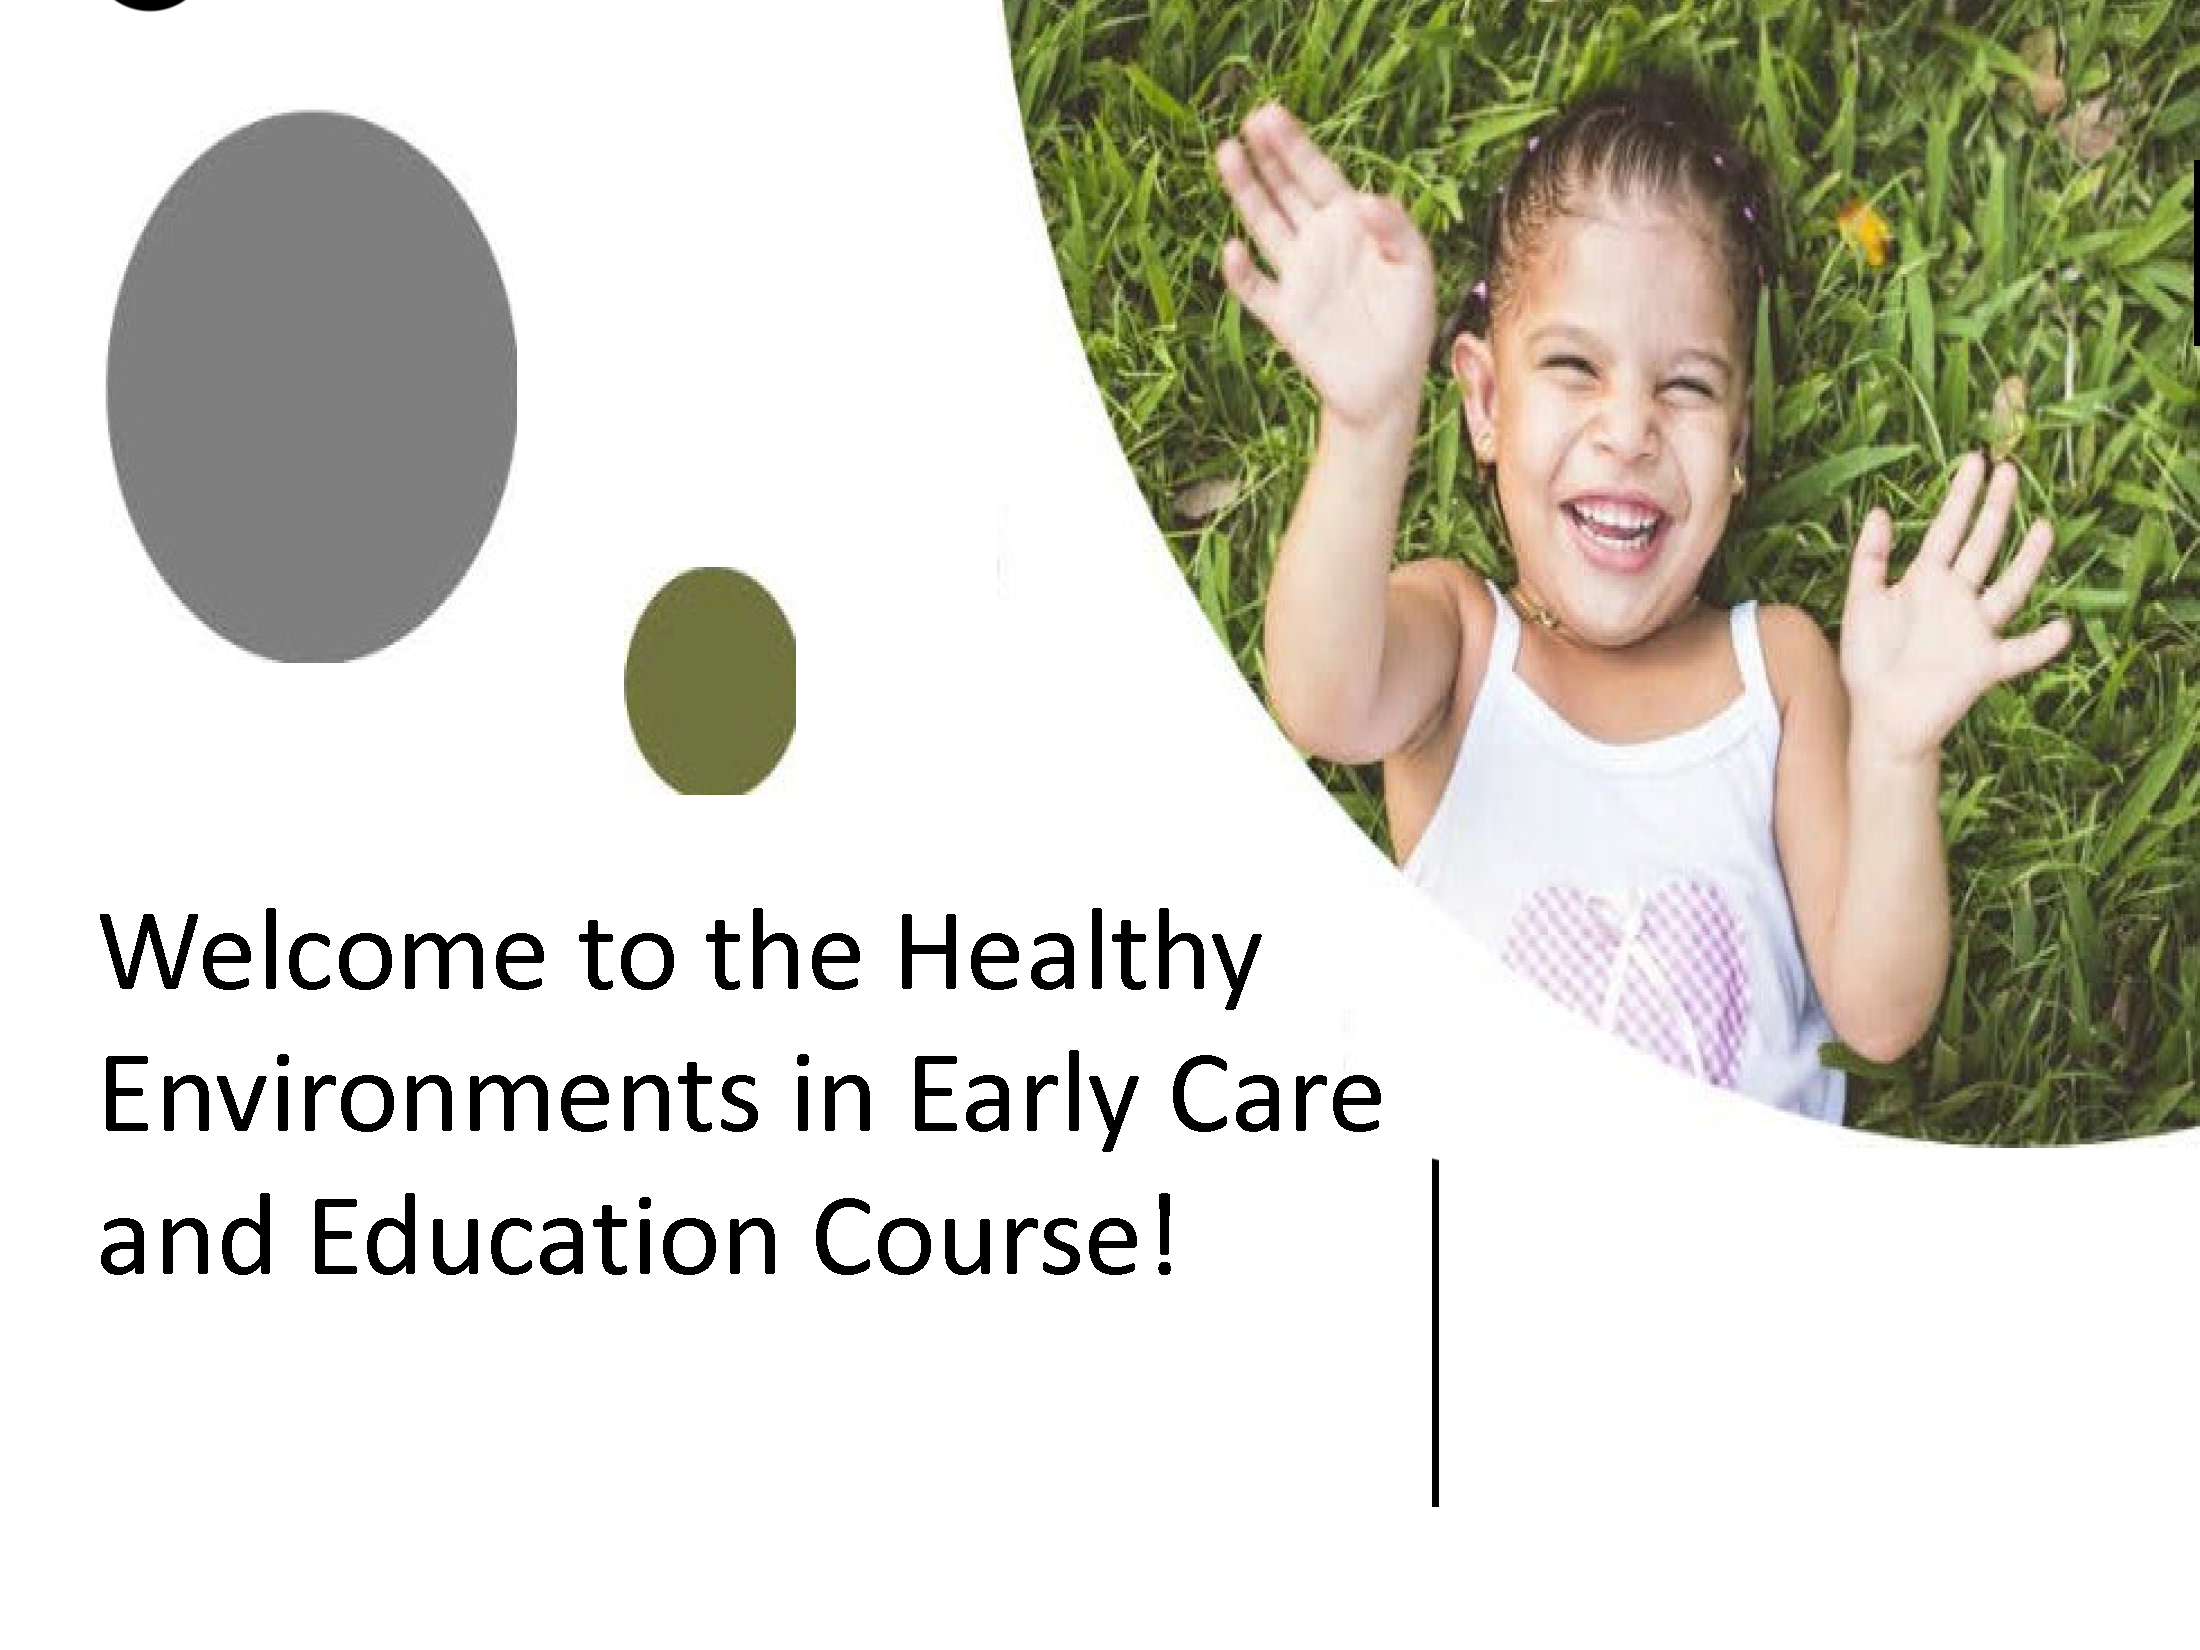 Welcome to Healthy Environments in Early Care and Education